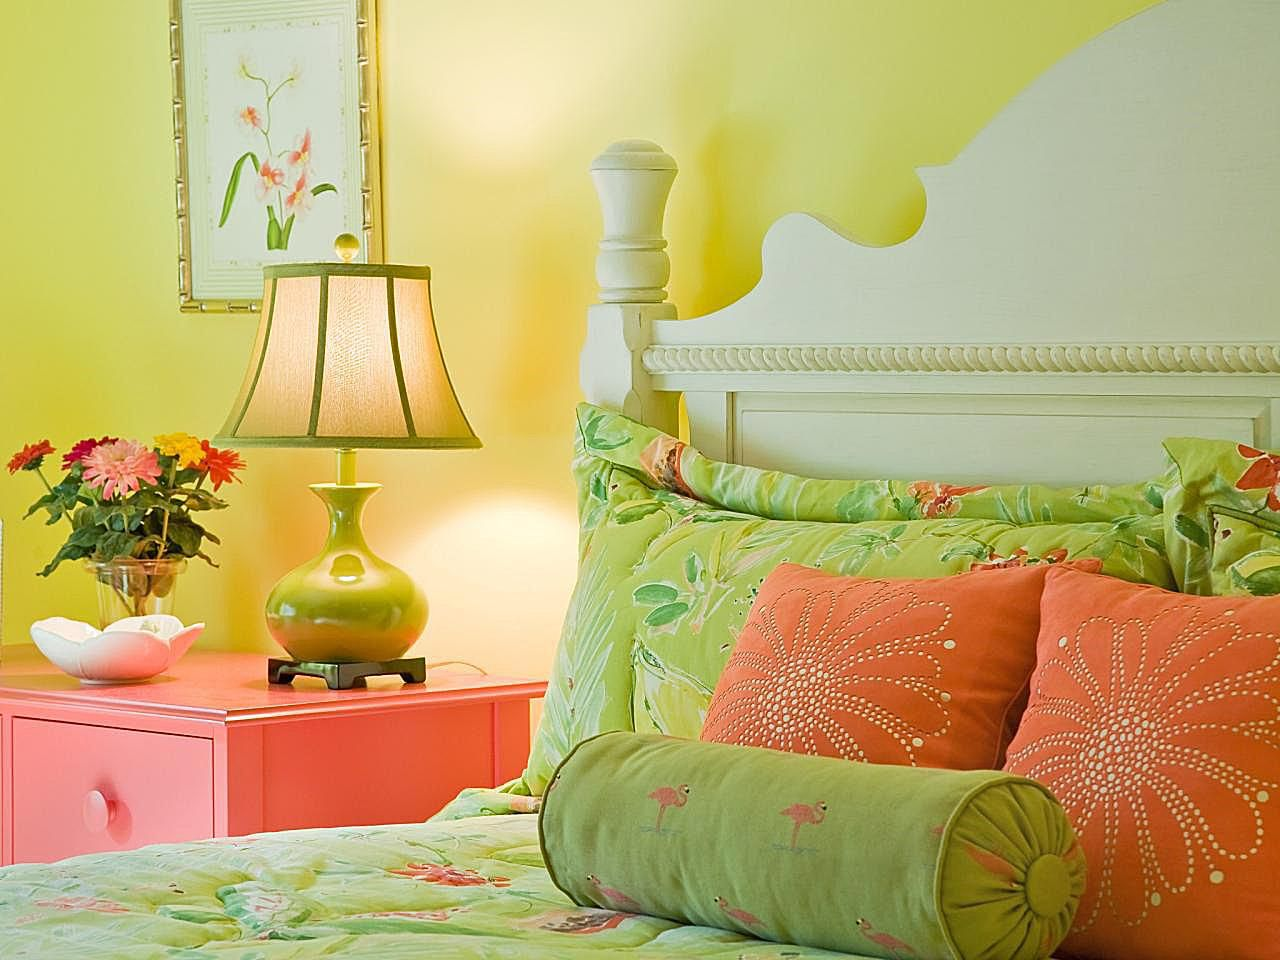 9 colorful decoration ideas for a small bedroom 16656 | coral and green bedroom 58a6c3615f9b58a3c9ec8954